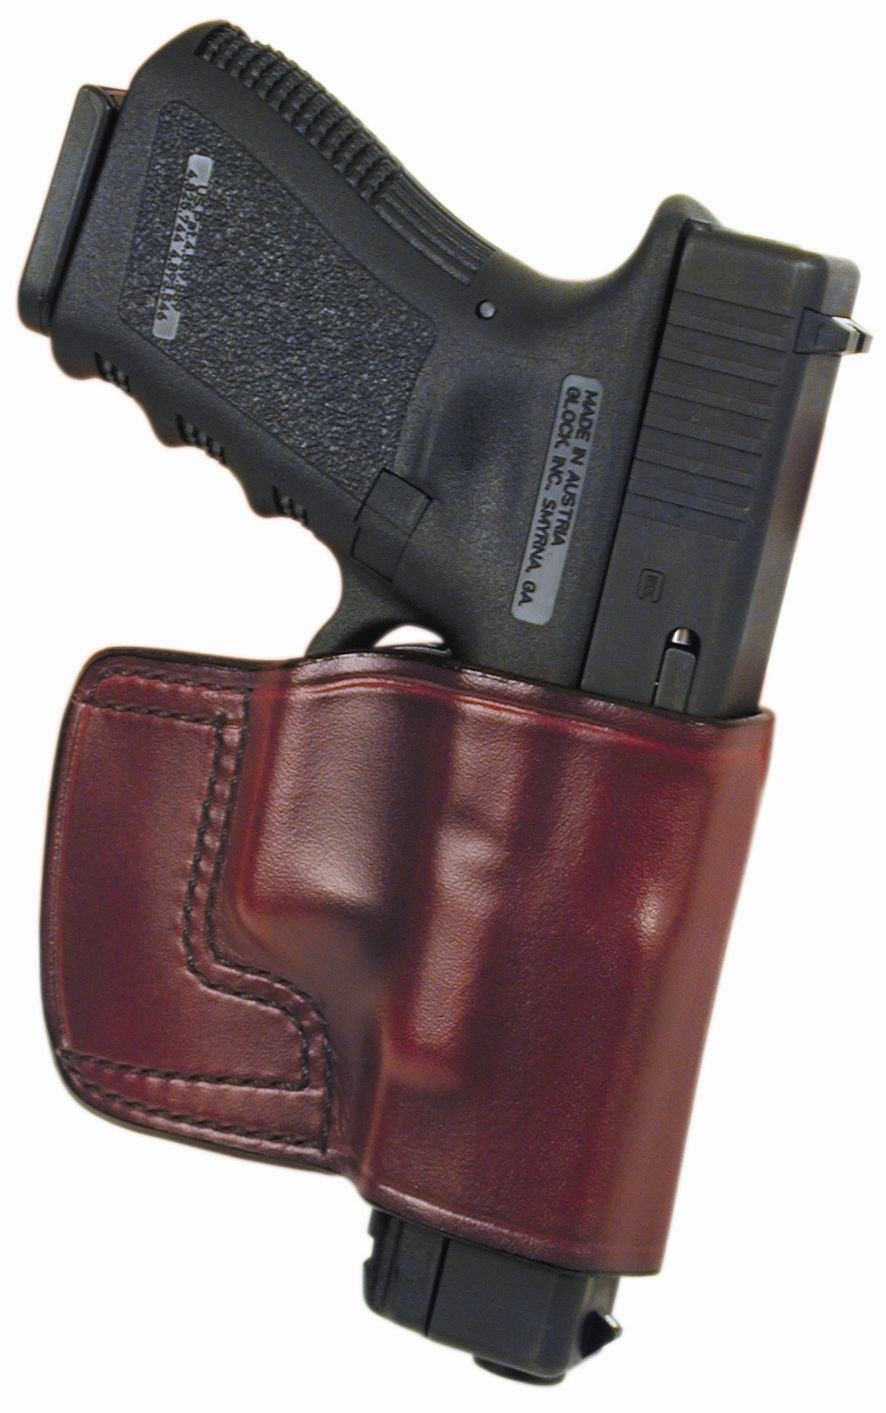 J.I.T. SLIDE-BELT HOLSTER